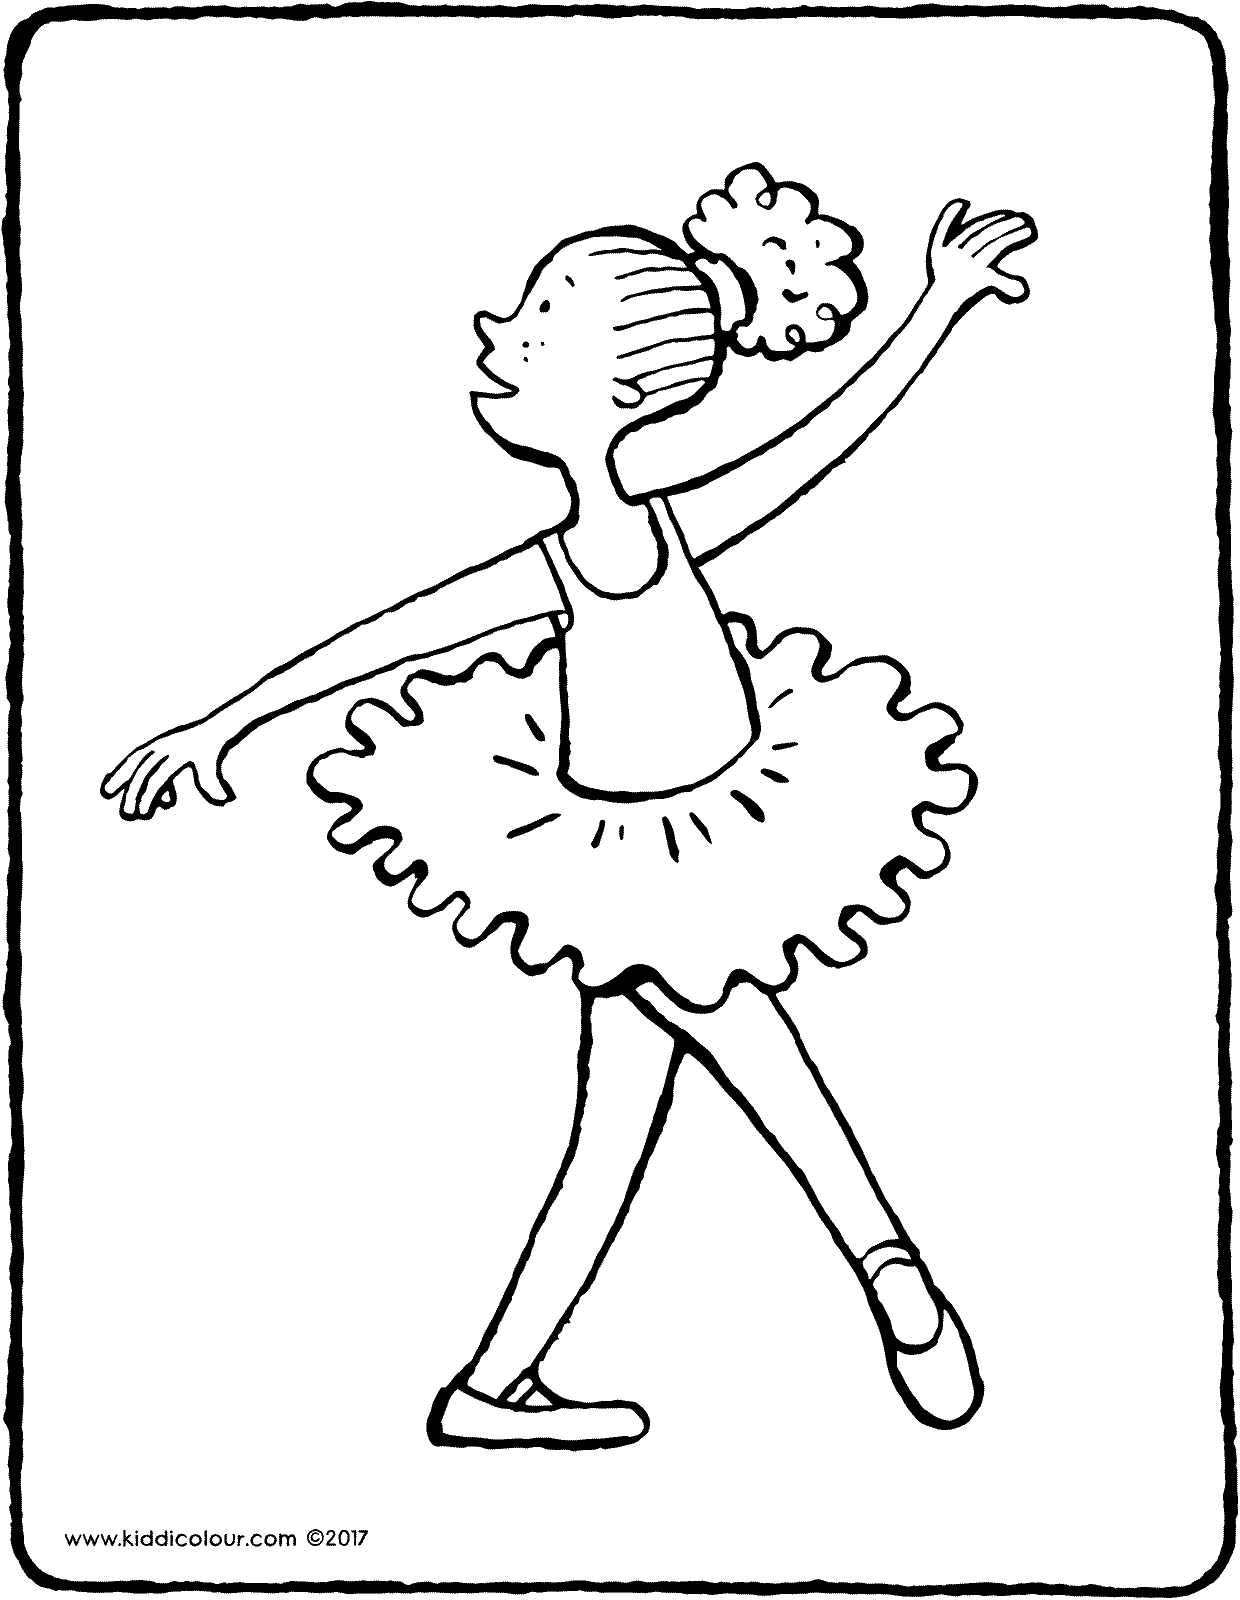 Dance Coloring Page Ballet Dancing Colouring Page Page Drawing Picture 01v Frosch Malvorlagen Malvorlage Prinzessin Tanzen